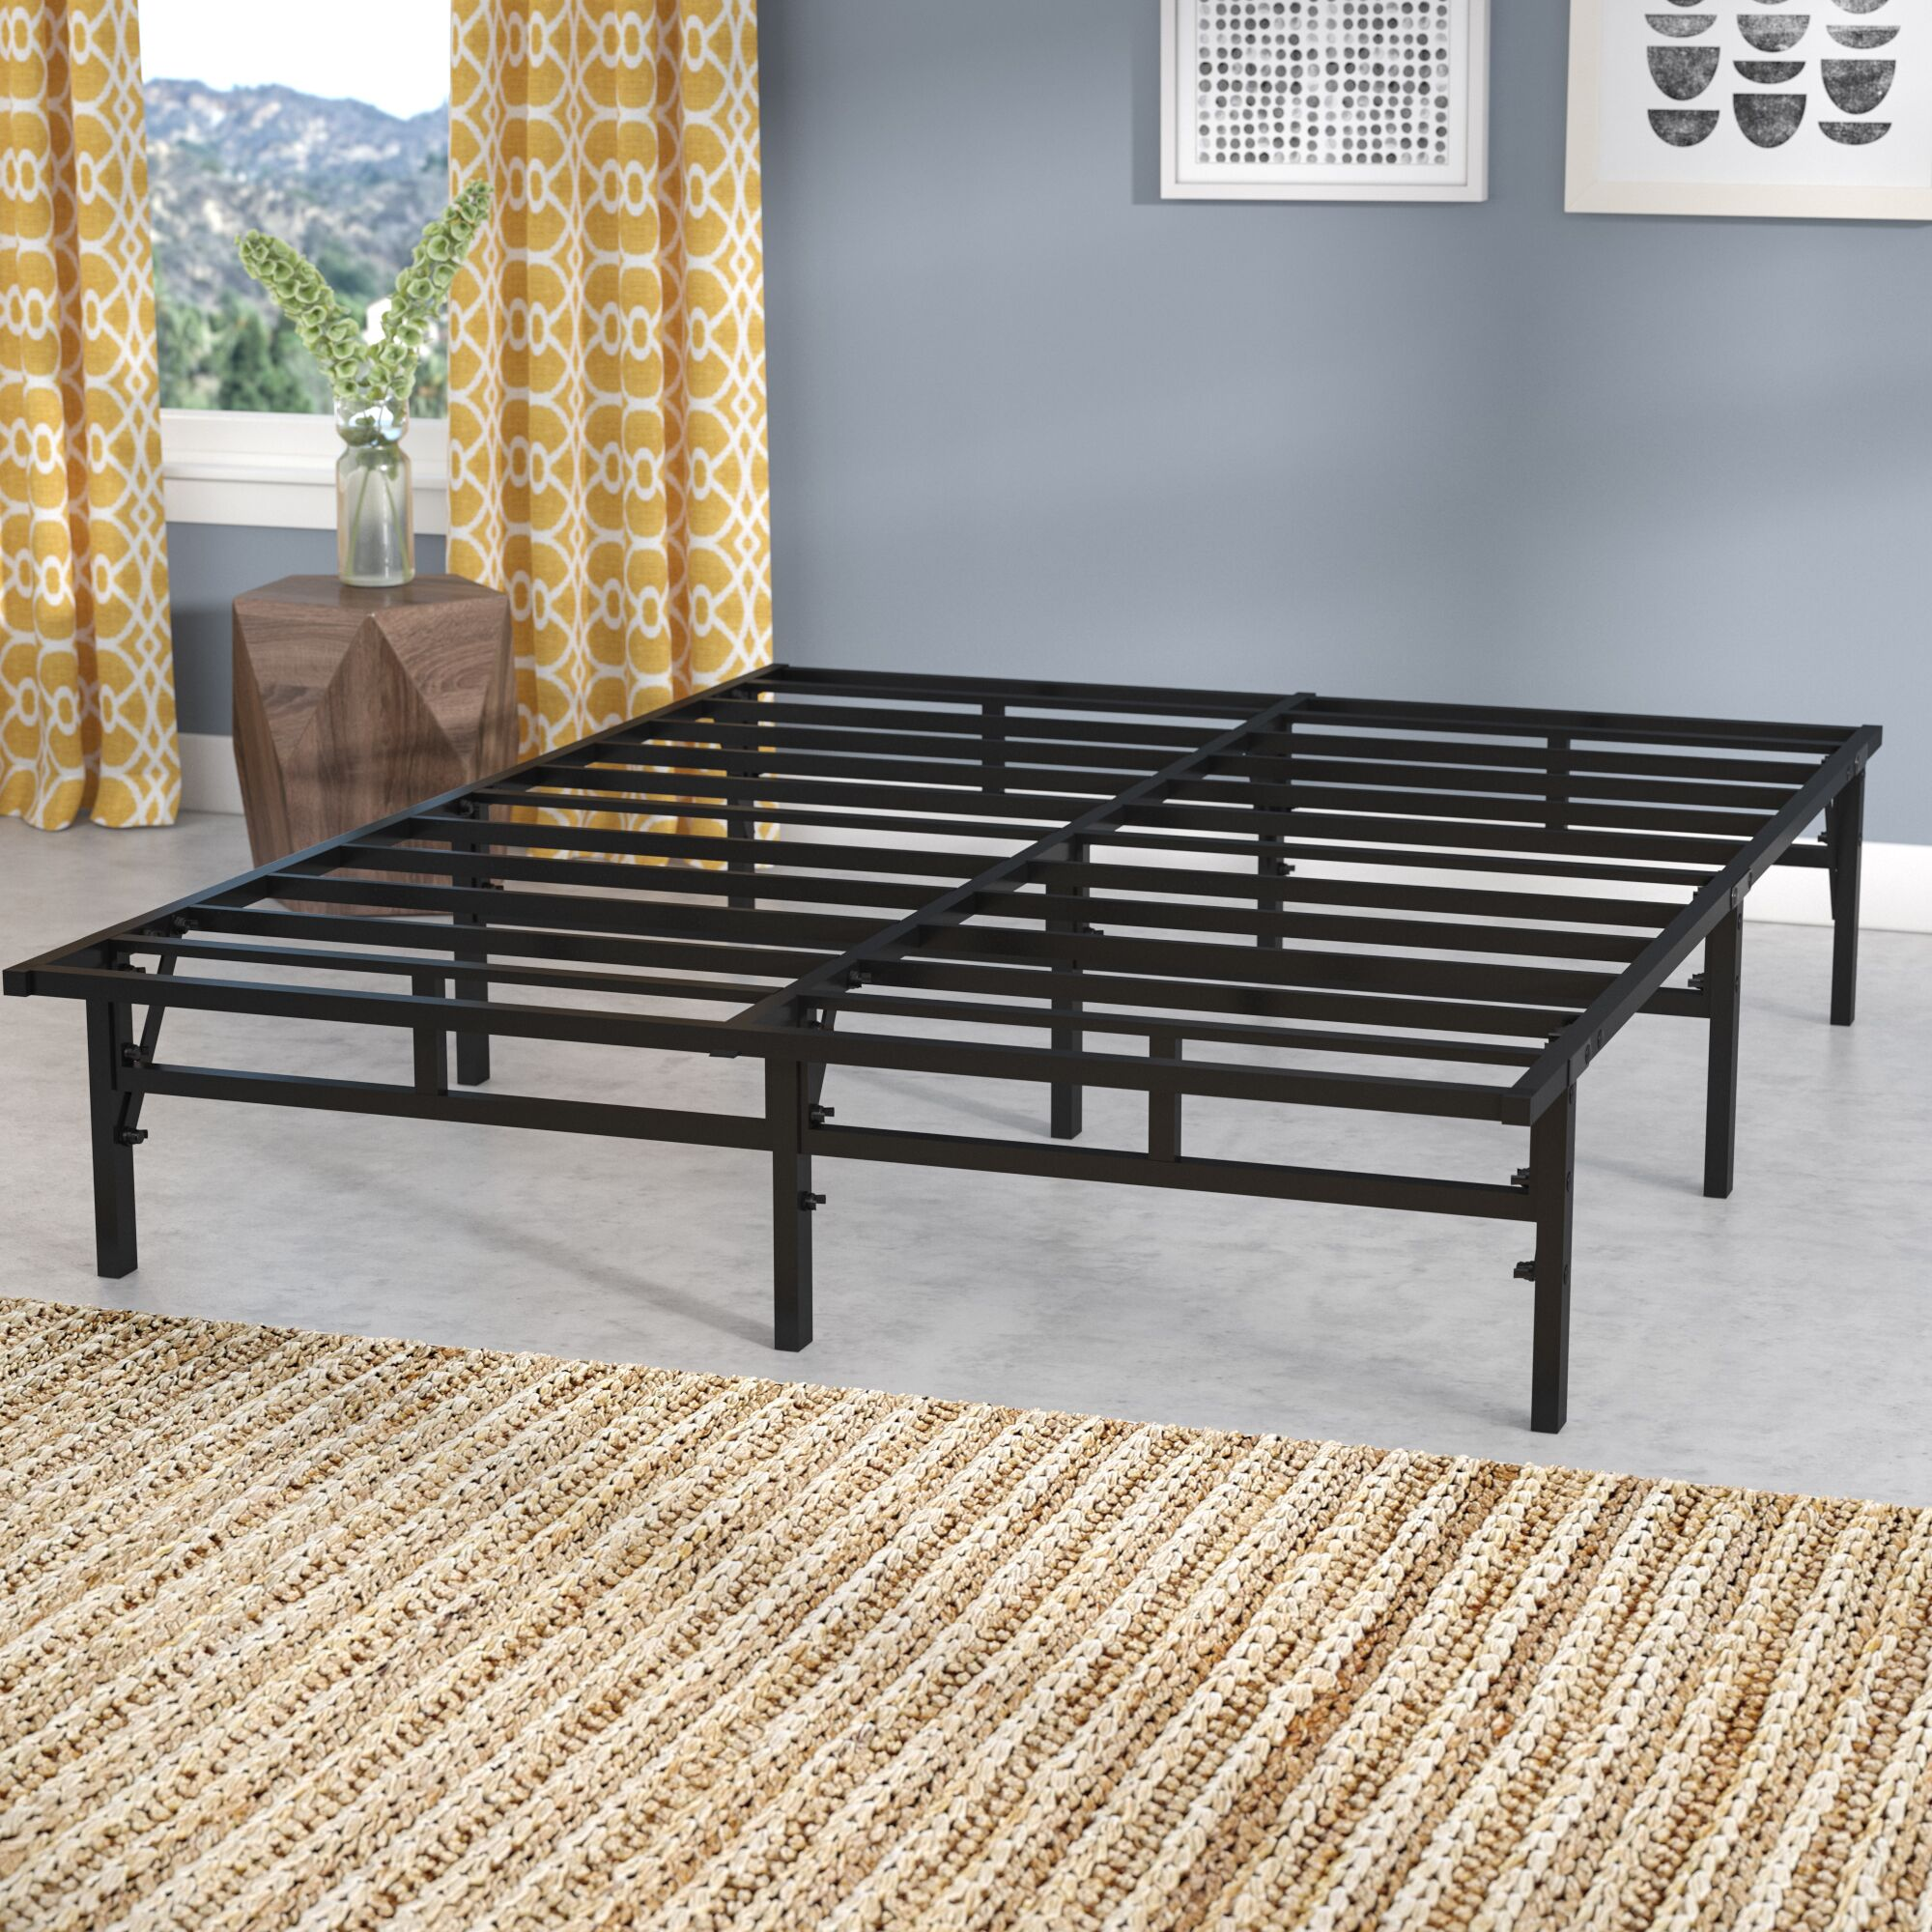 Platform Bed Frame Size: Queen